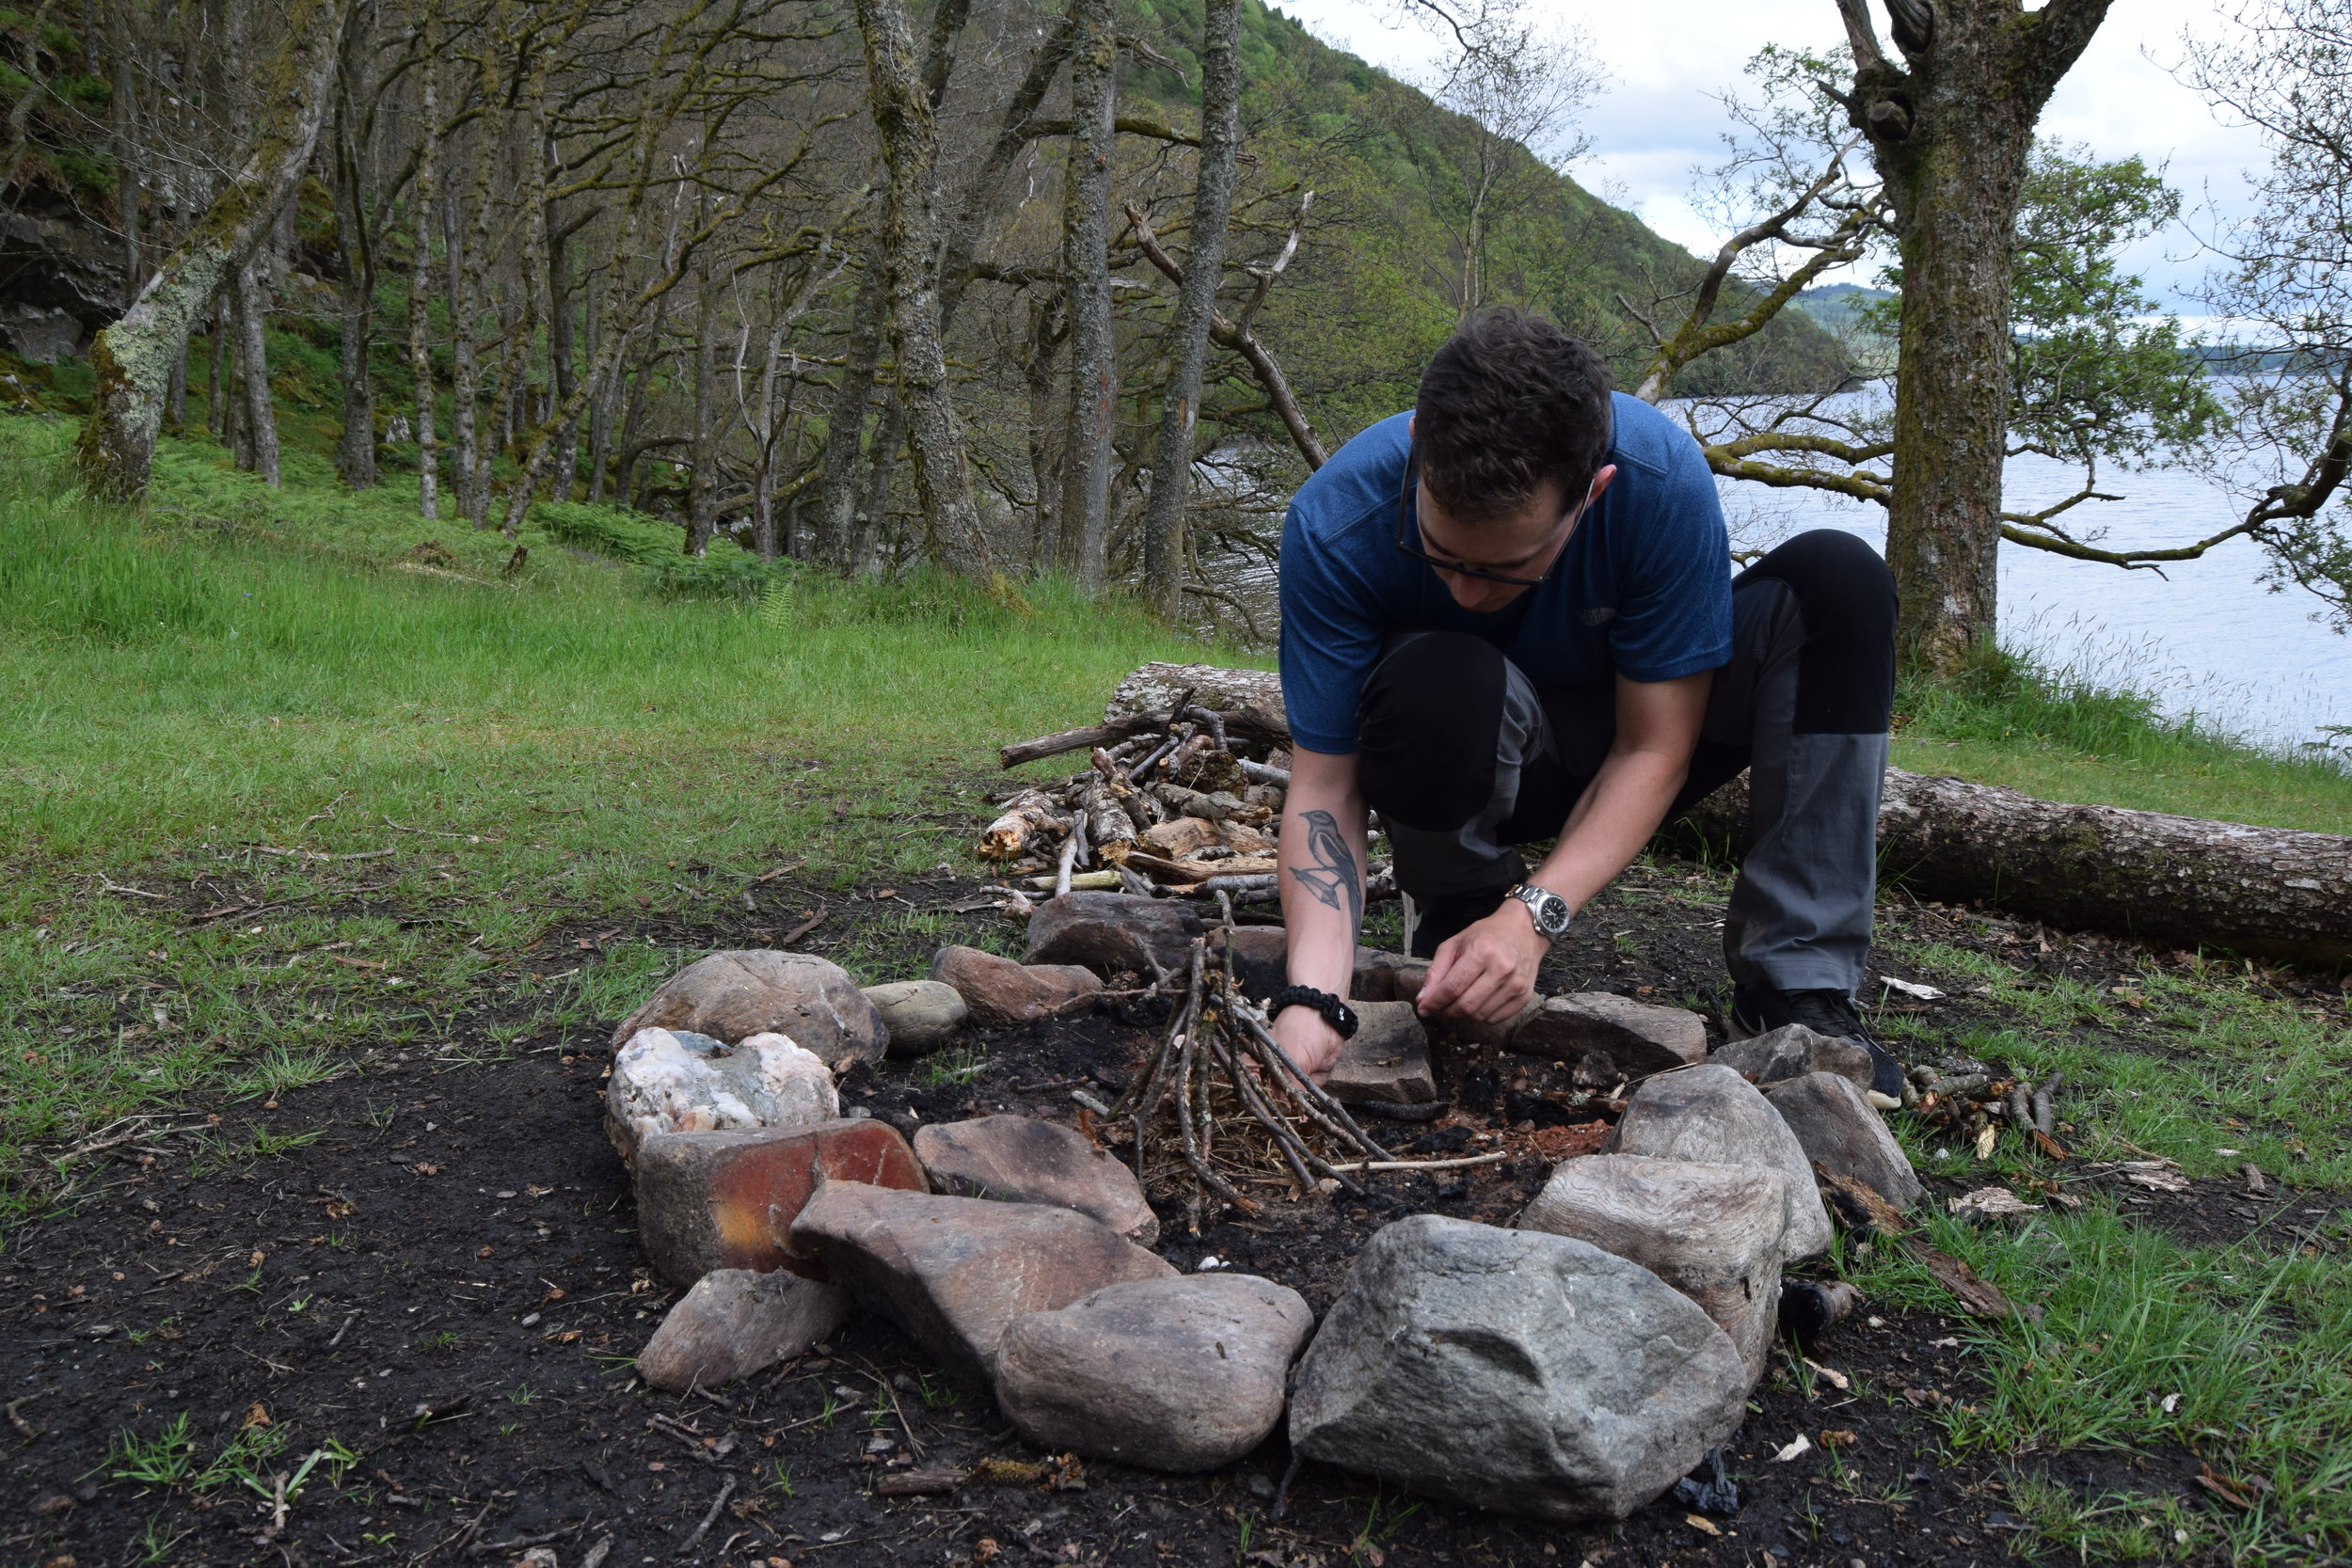 Evening entertainment on the West Highland Way